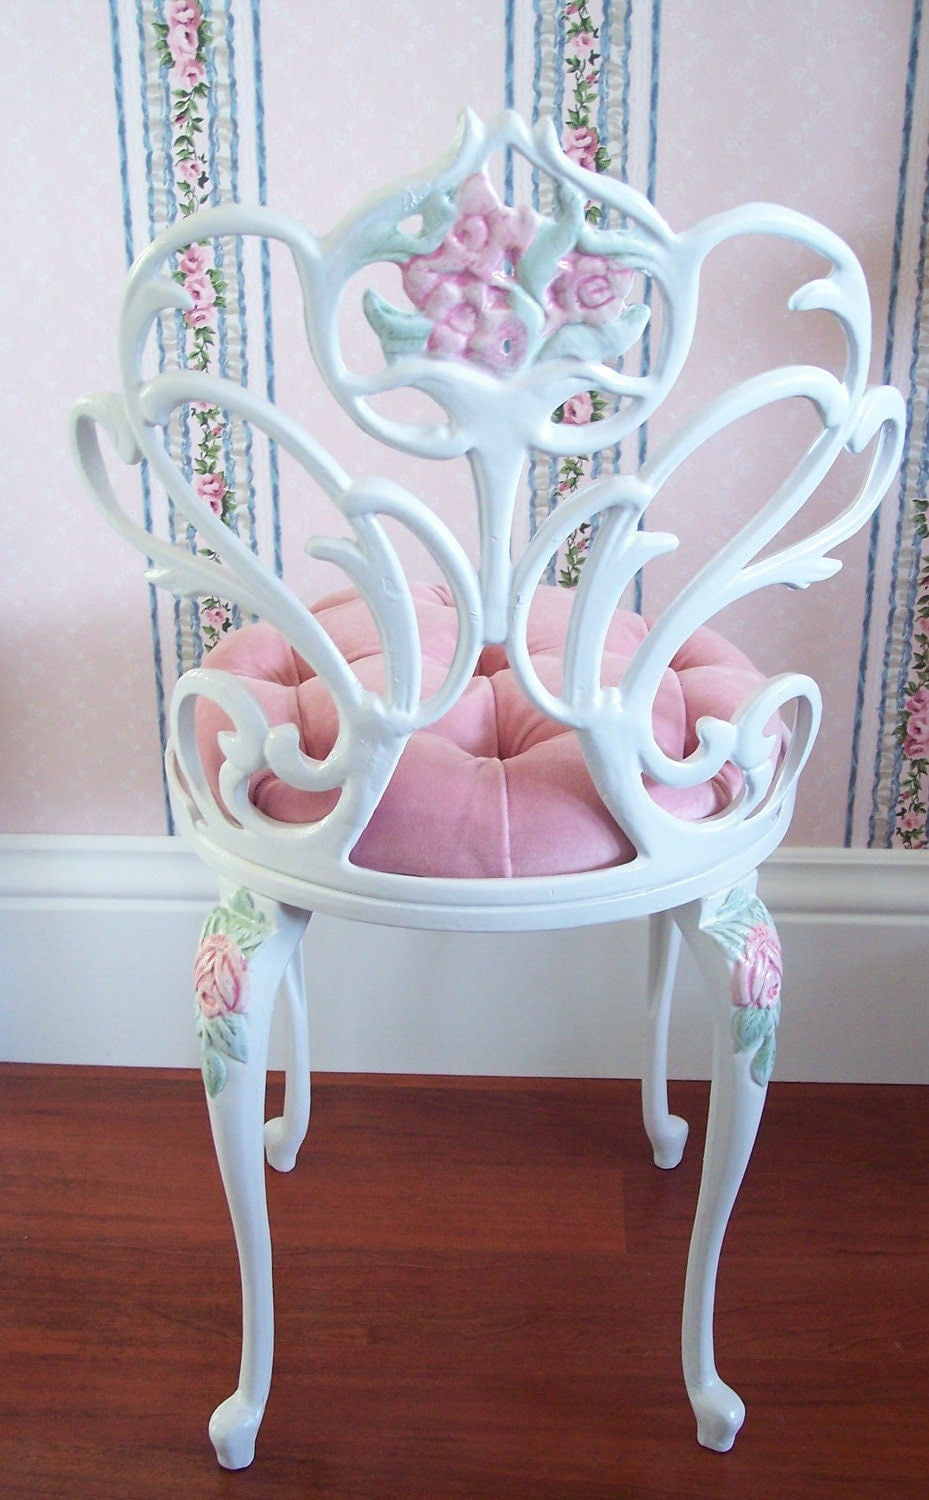 Vintage White Scrolly Boudoir Vanity Chair Stool With Hand